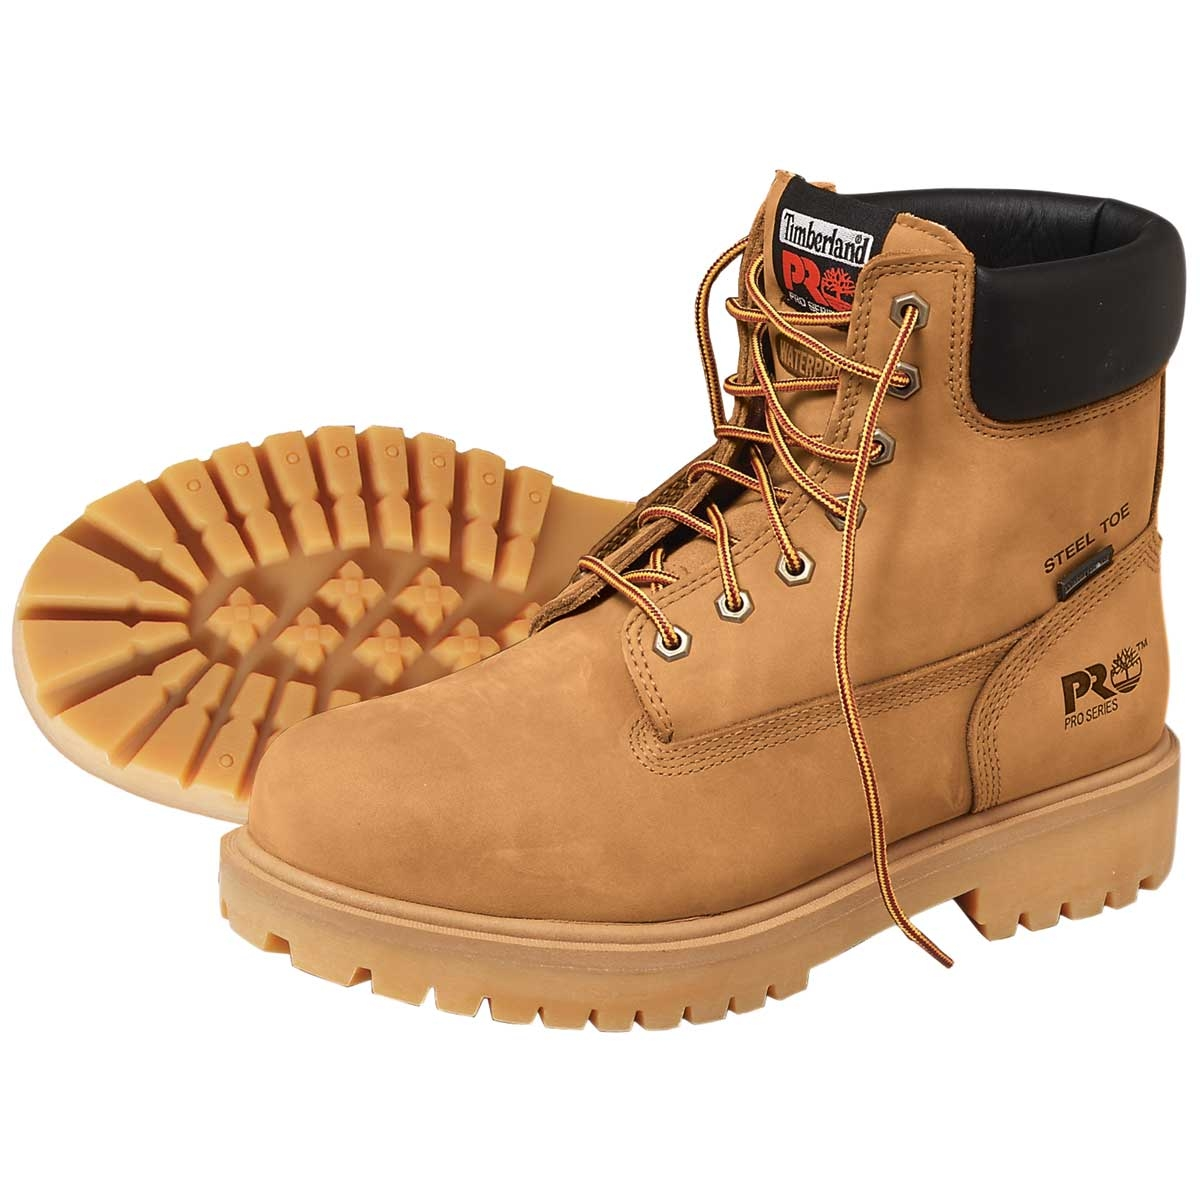 Skidproof Mens Wide Shoes